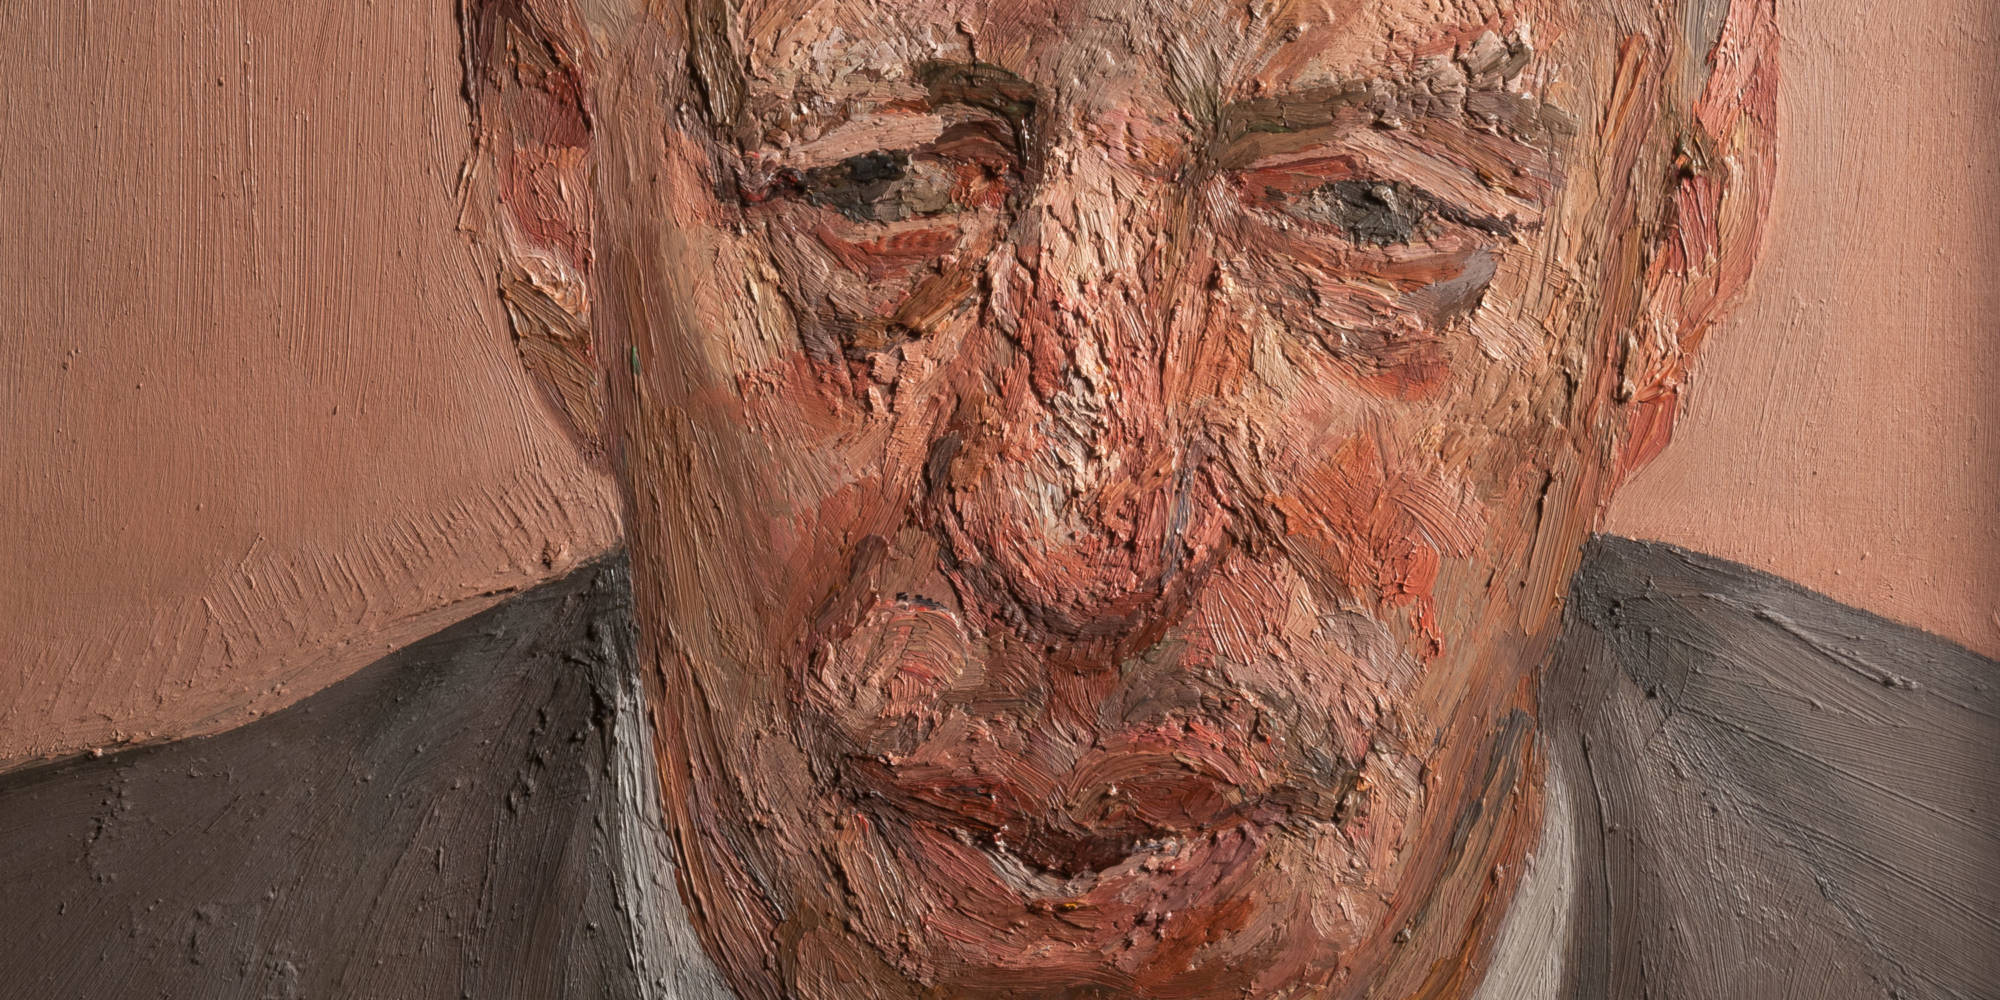 Lord Rothschild painted by Lucien Freud